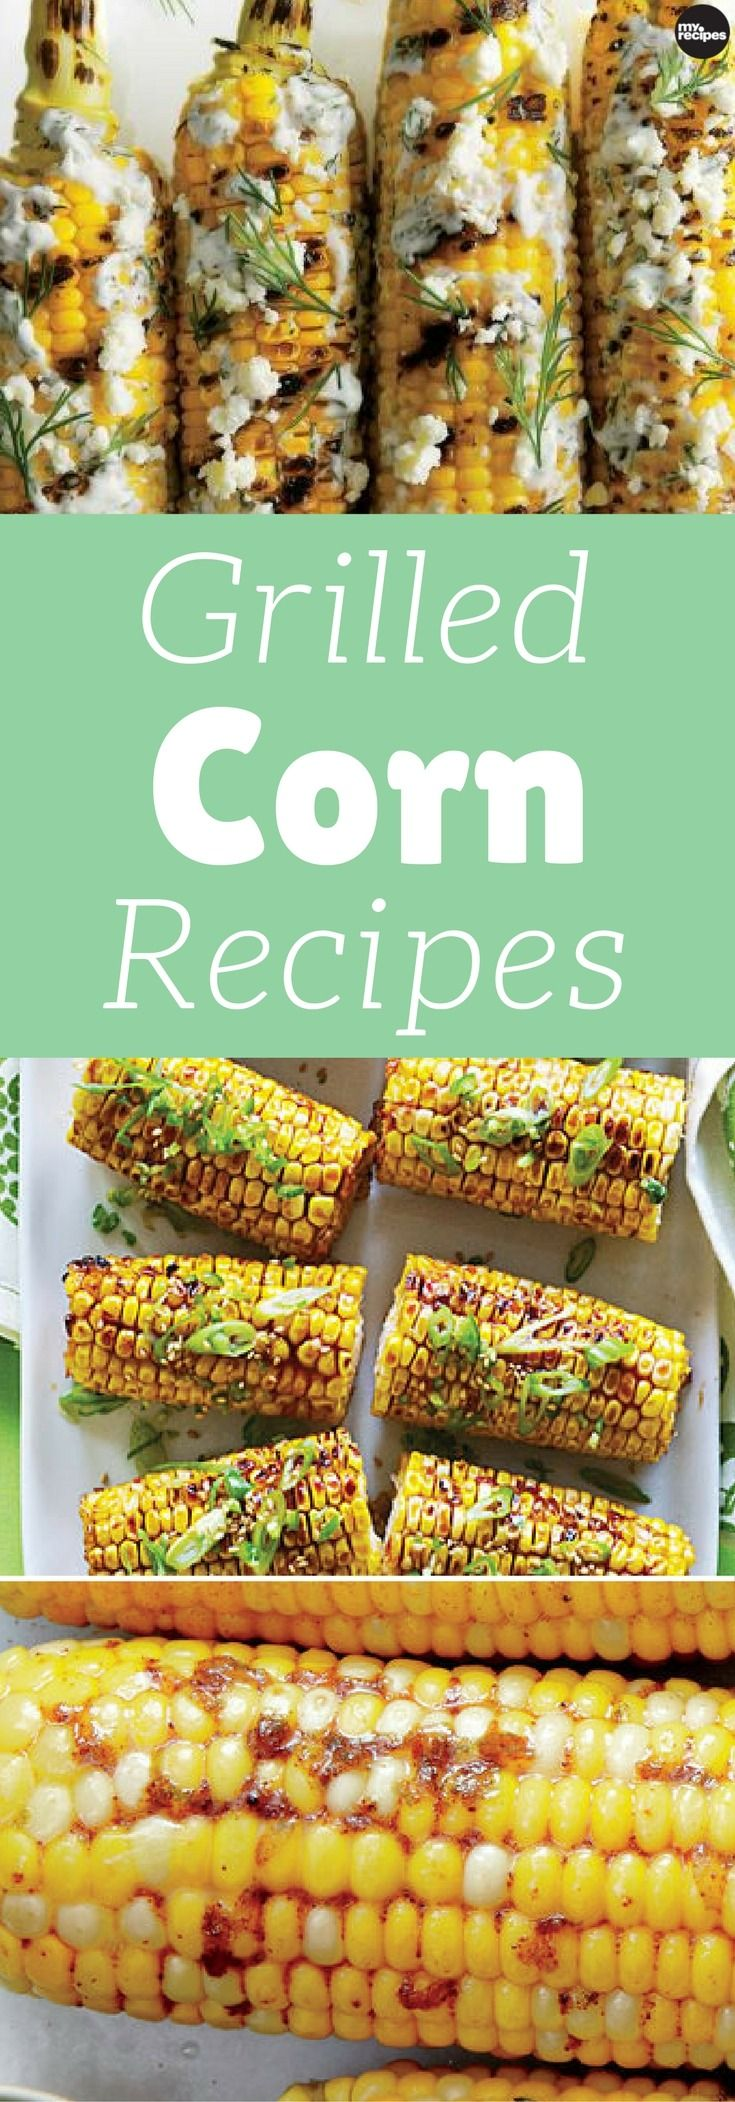 Fresh summer corn is one of the season's best gifts, and when you grill it, the flavor goes from super good to sublime. These grilled corn toppings and marinades make for the perfect cookout side. | MyRecipes